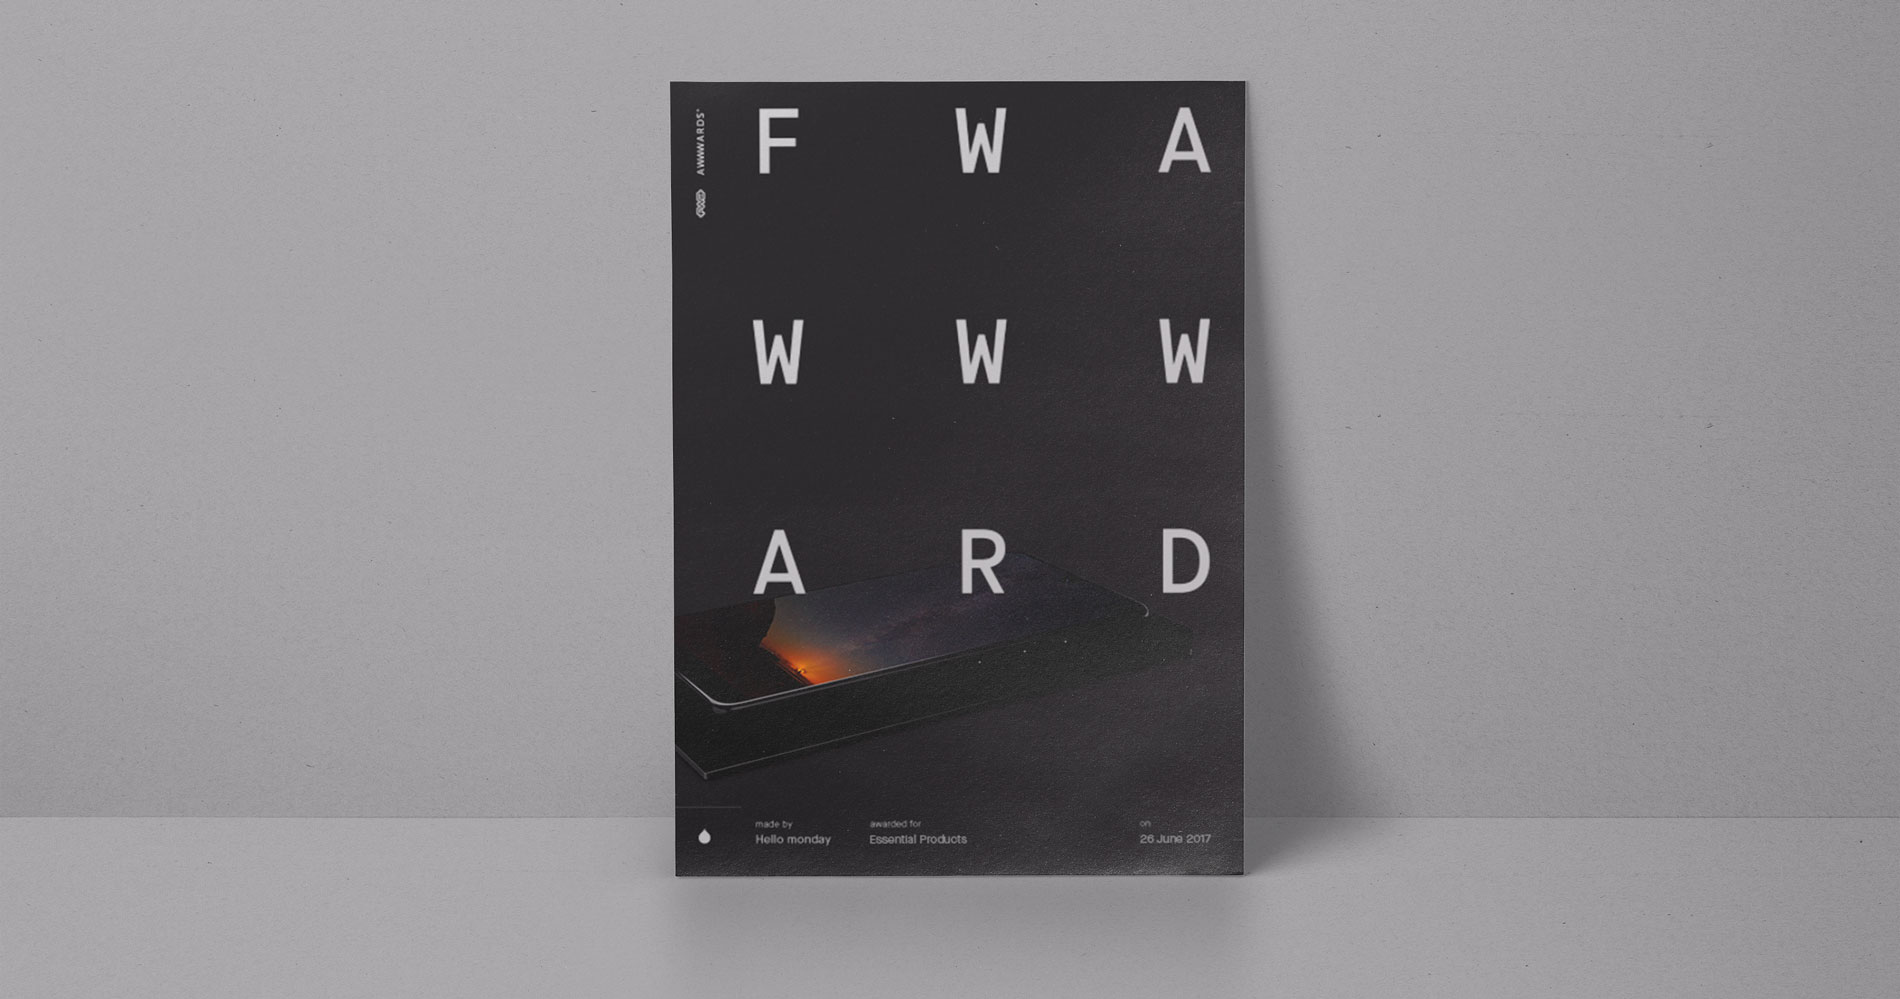 The Unveiling of the FWAWWWARD Logo and Certificate.